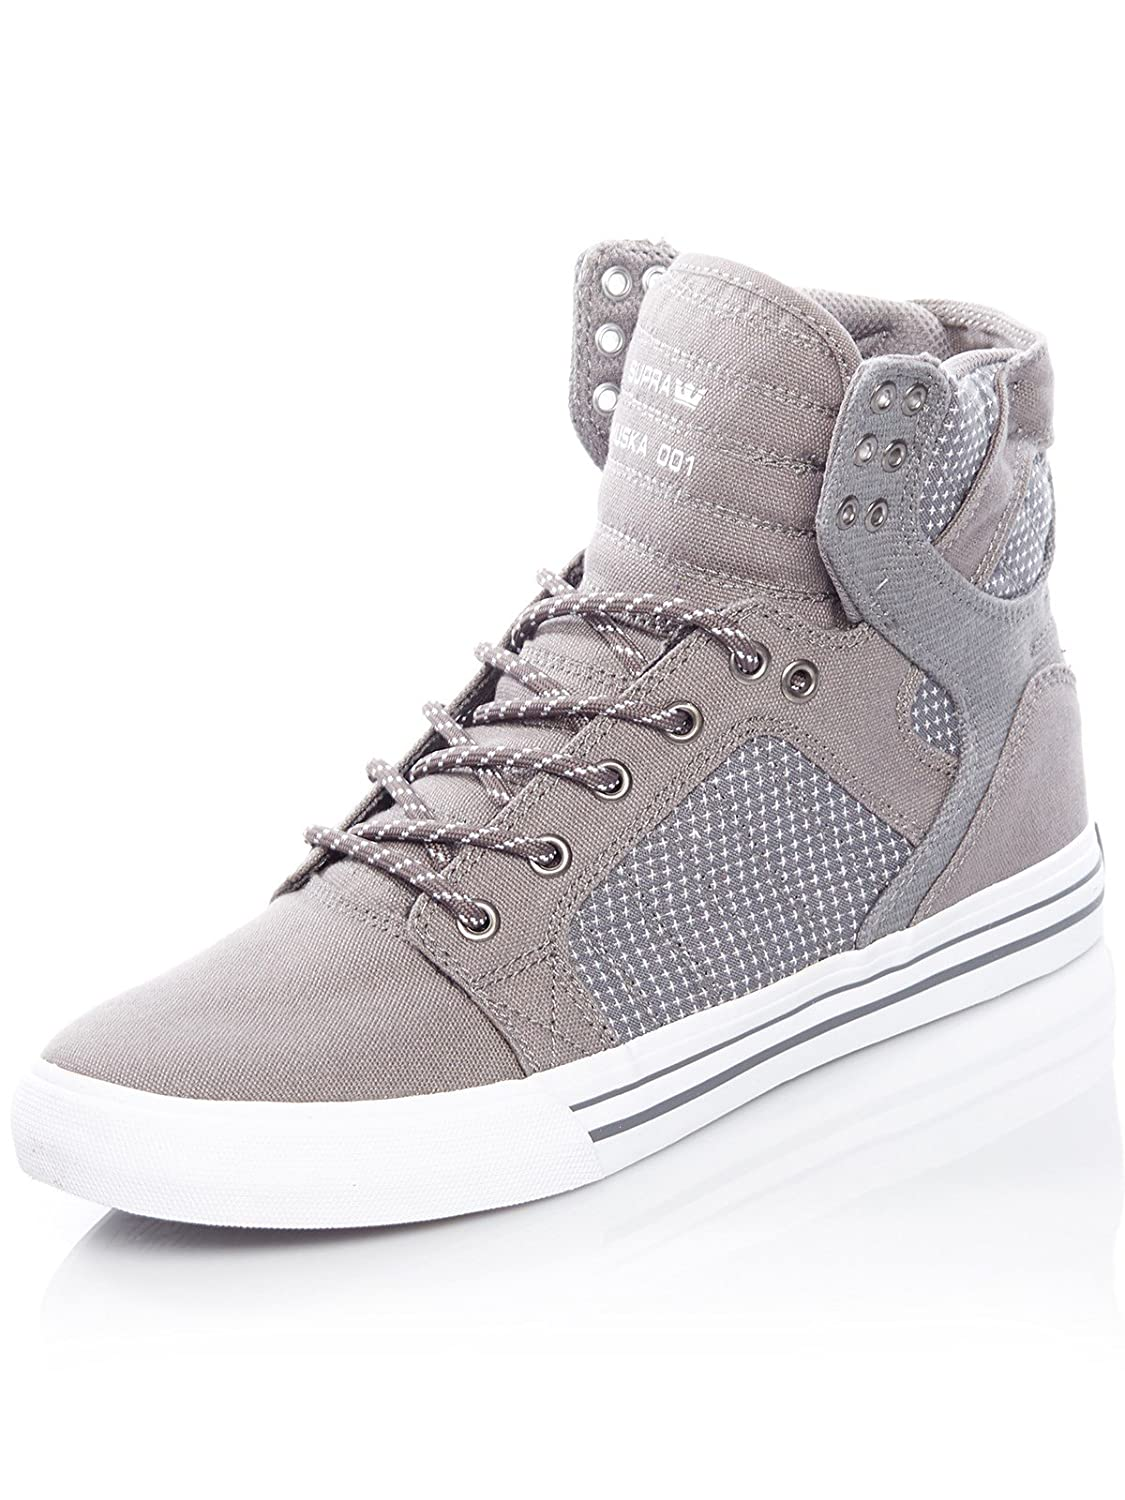 Supra Men's Skytop B074KK5WW2 11.5 M US|Charcoal-white